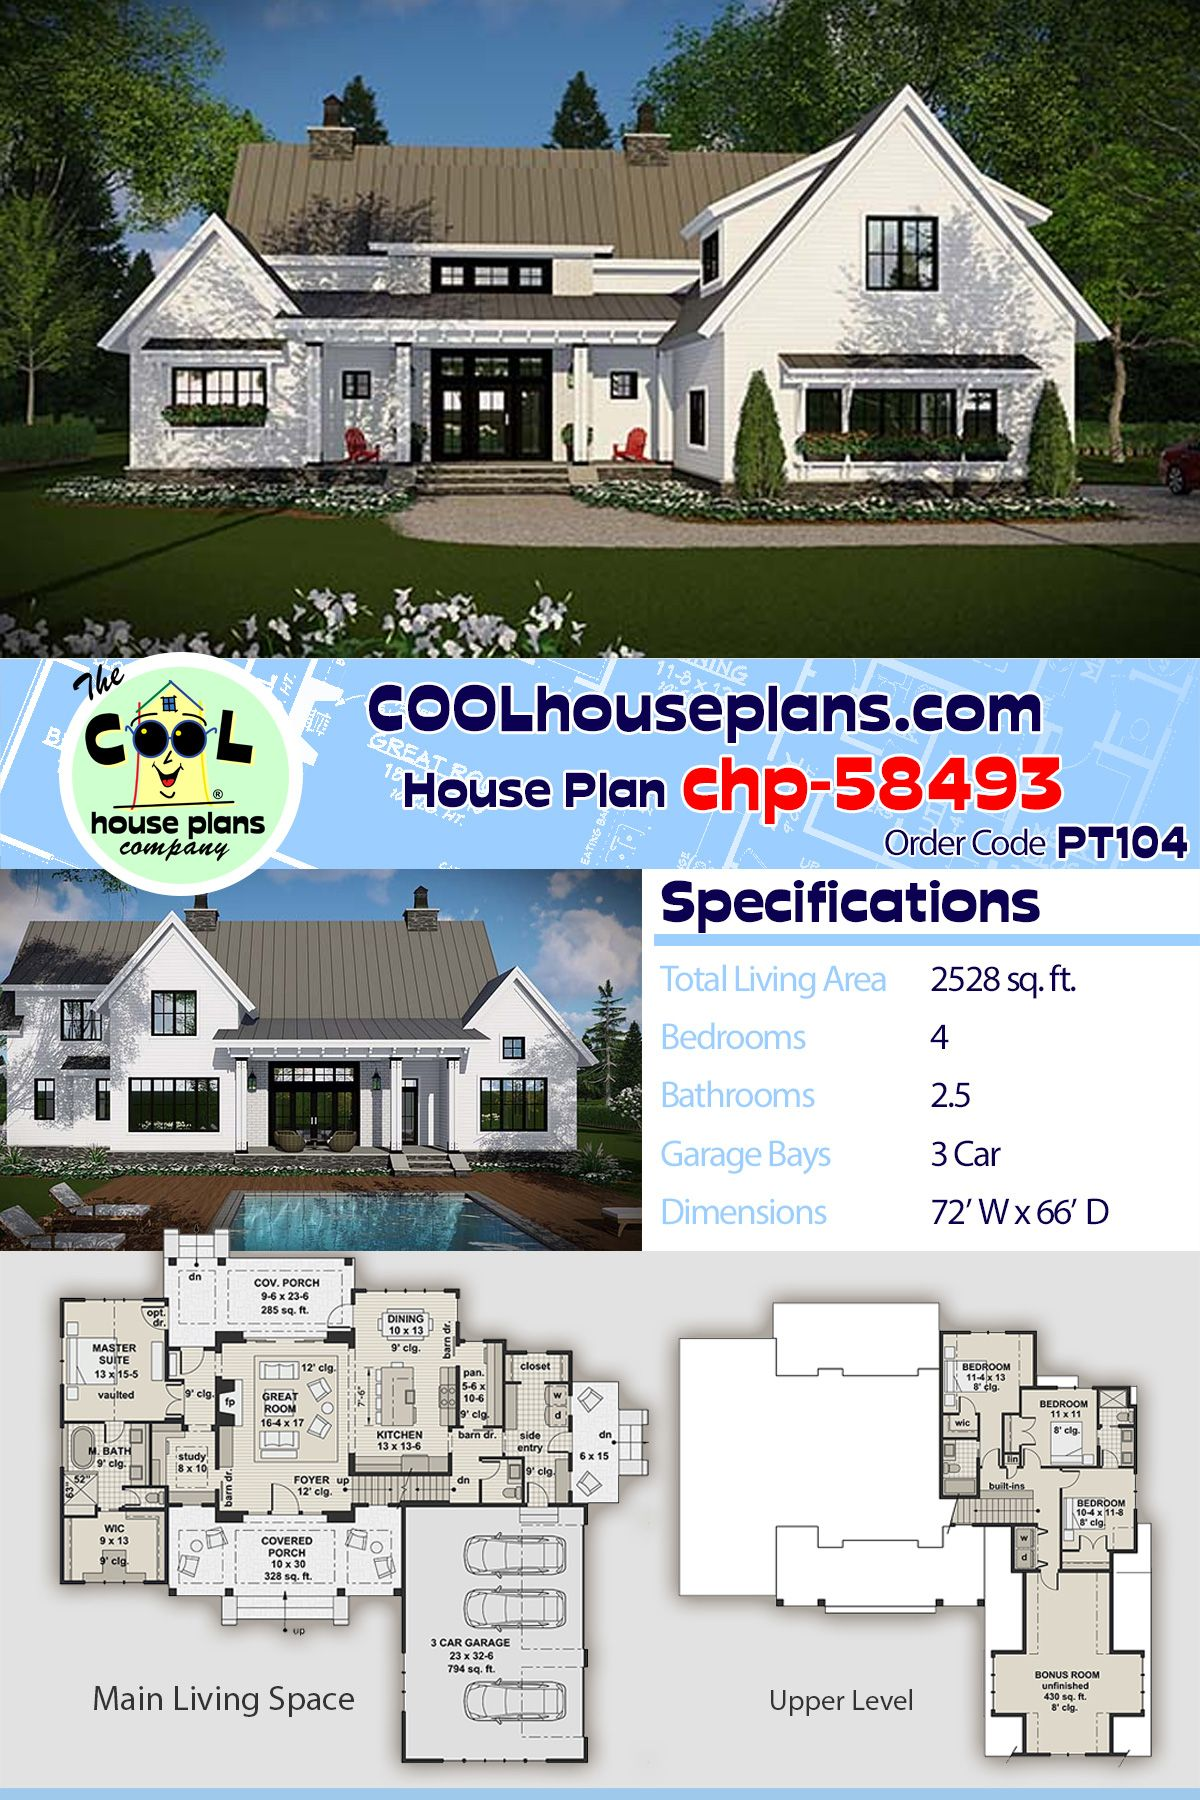 House Plan Chp 58493 With Images House Plans Farmhouse House Plans Best House Plans